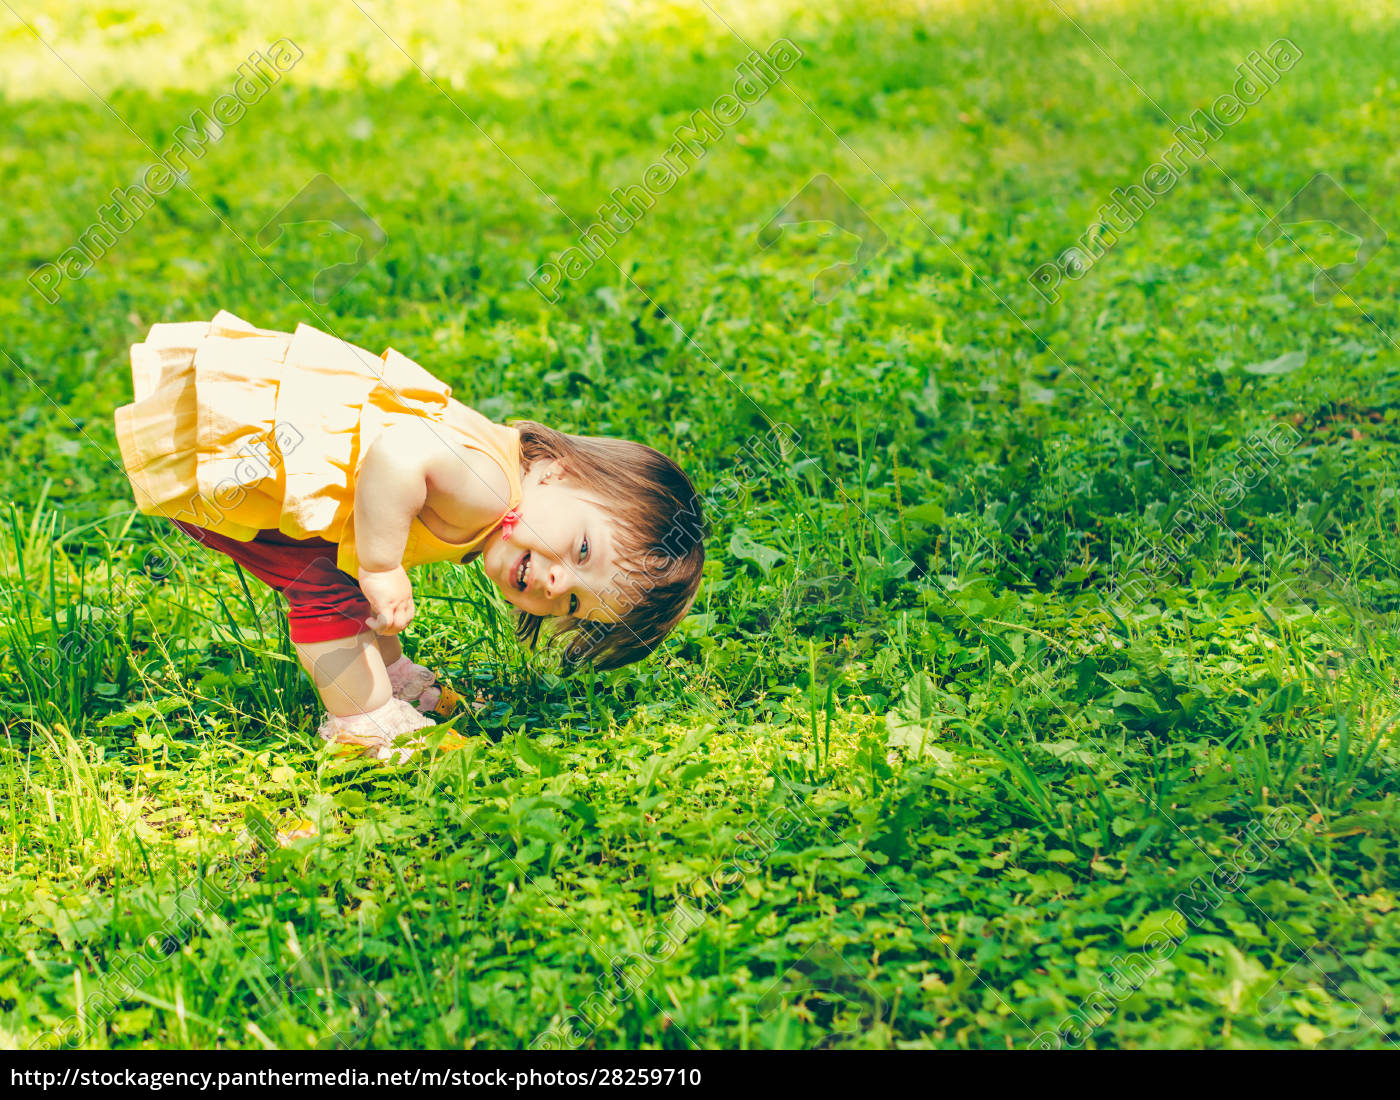 one-year, baby, girl, playing, upside, down - 28259710